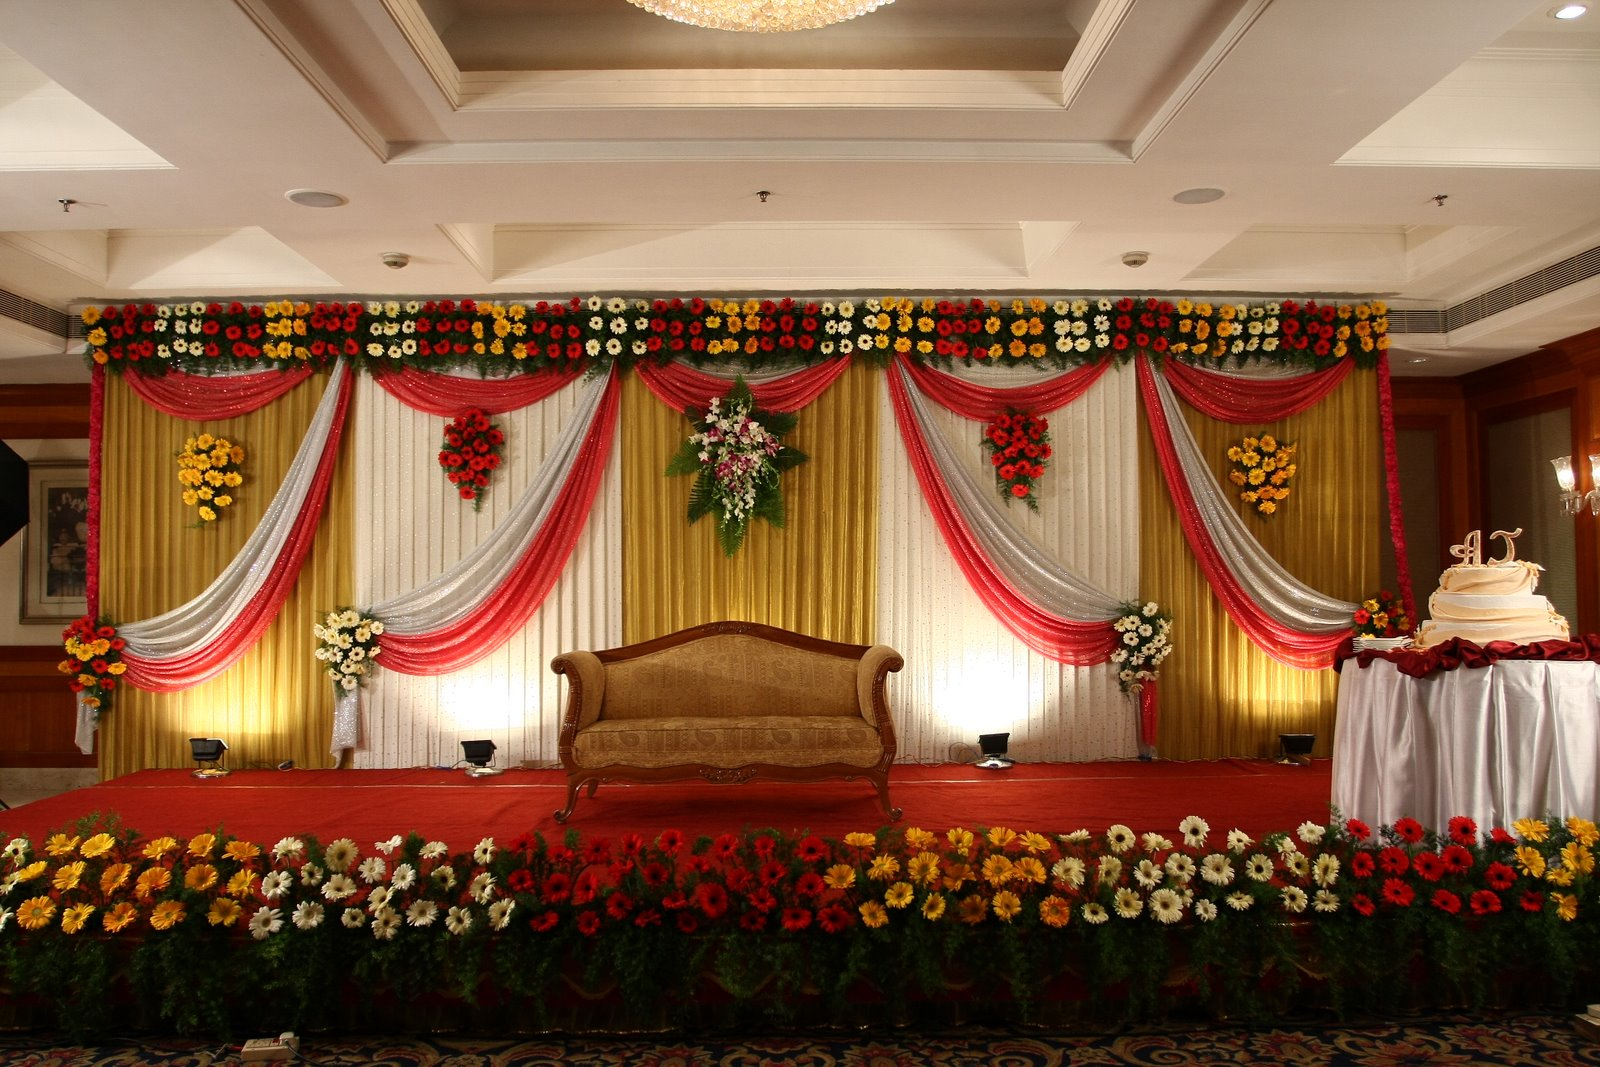 About marriage marriage decoration photos 2013 marriage for Simple wedding decoration ideas for reception